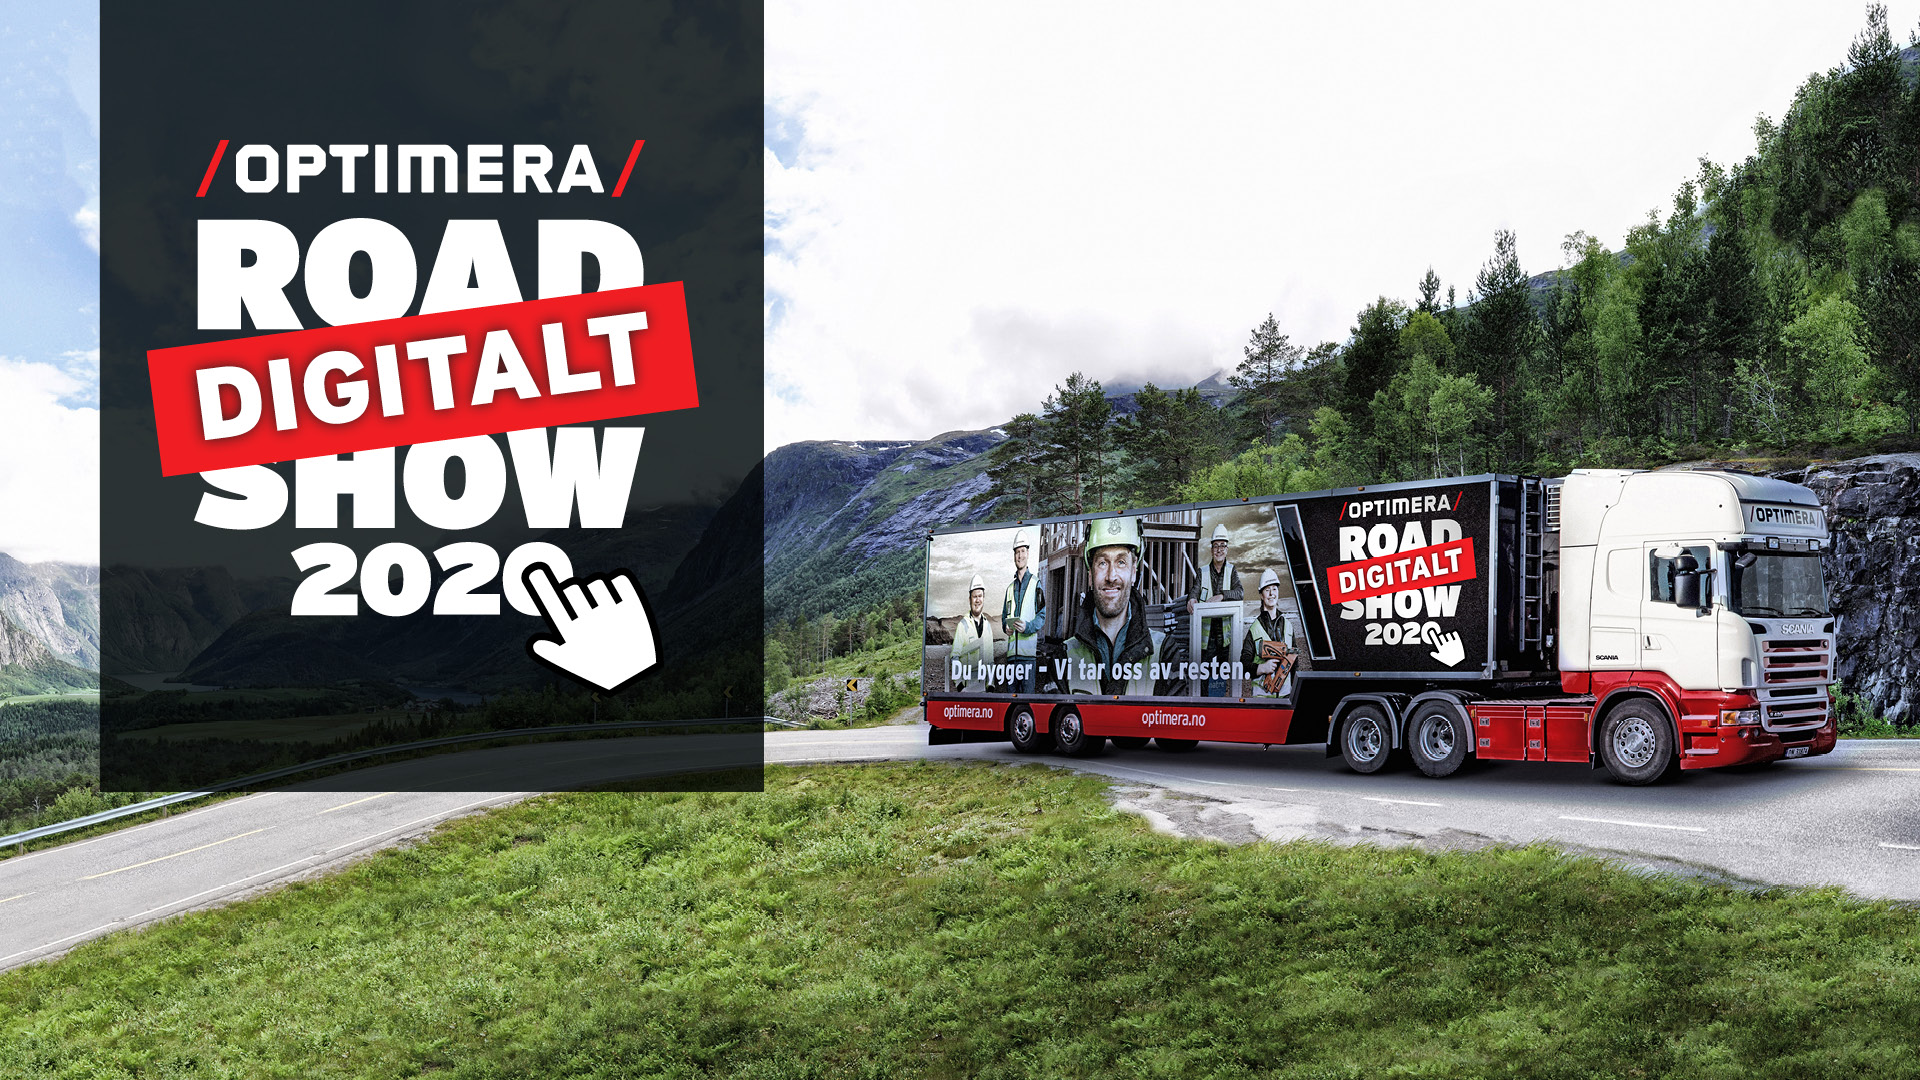 Hero-bilde av Optimera Roadshow-trailer